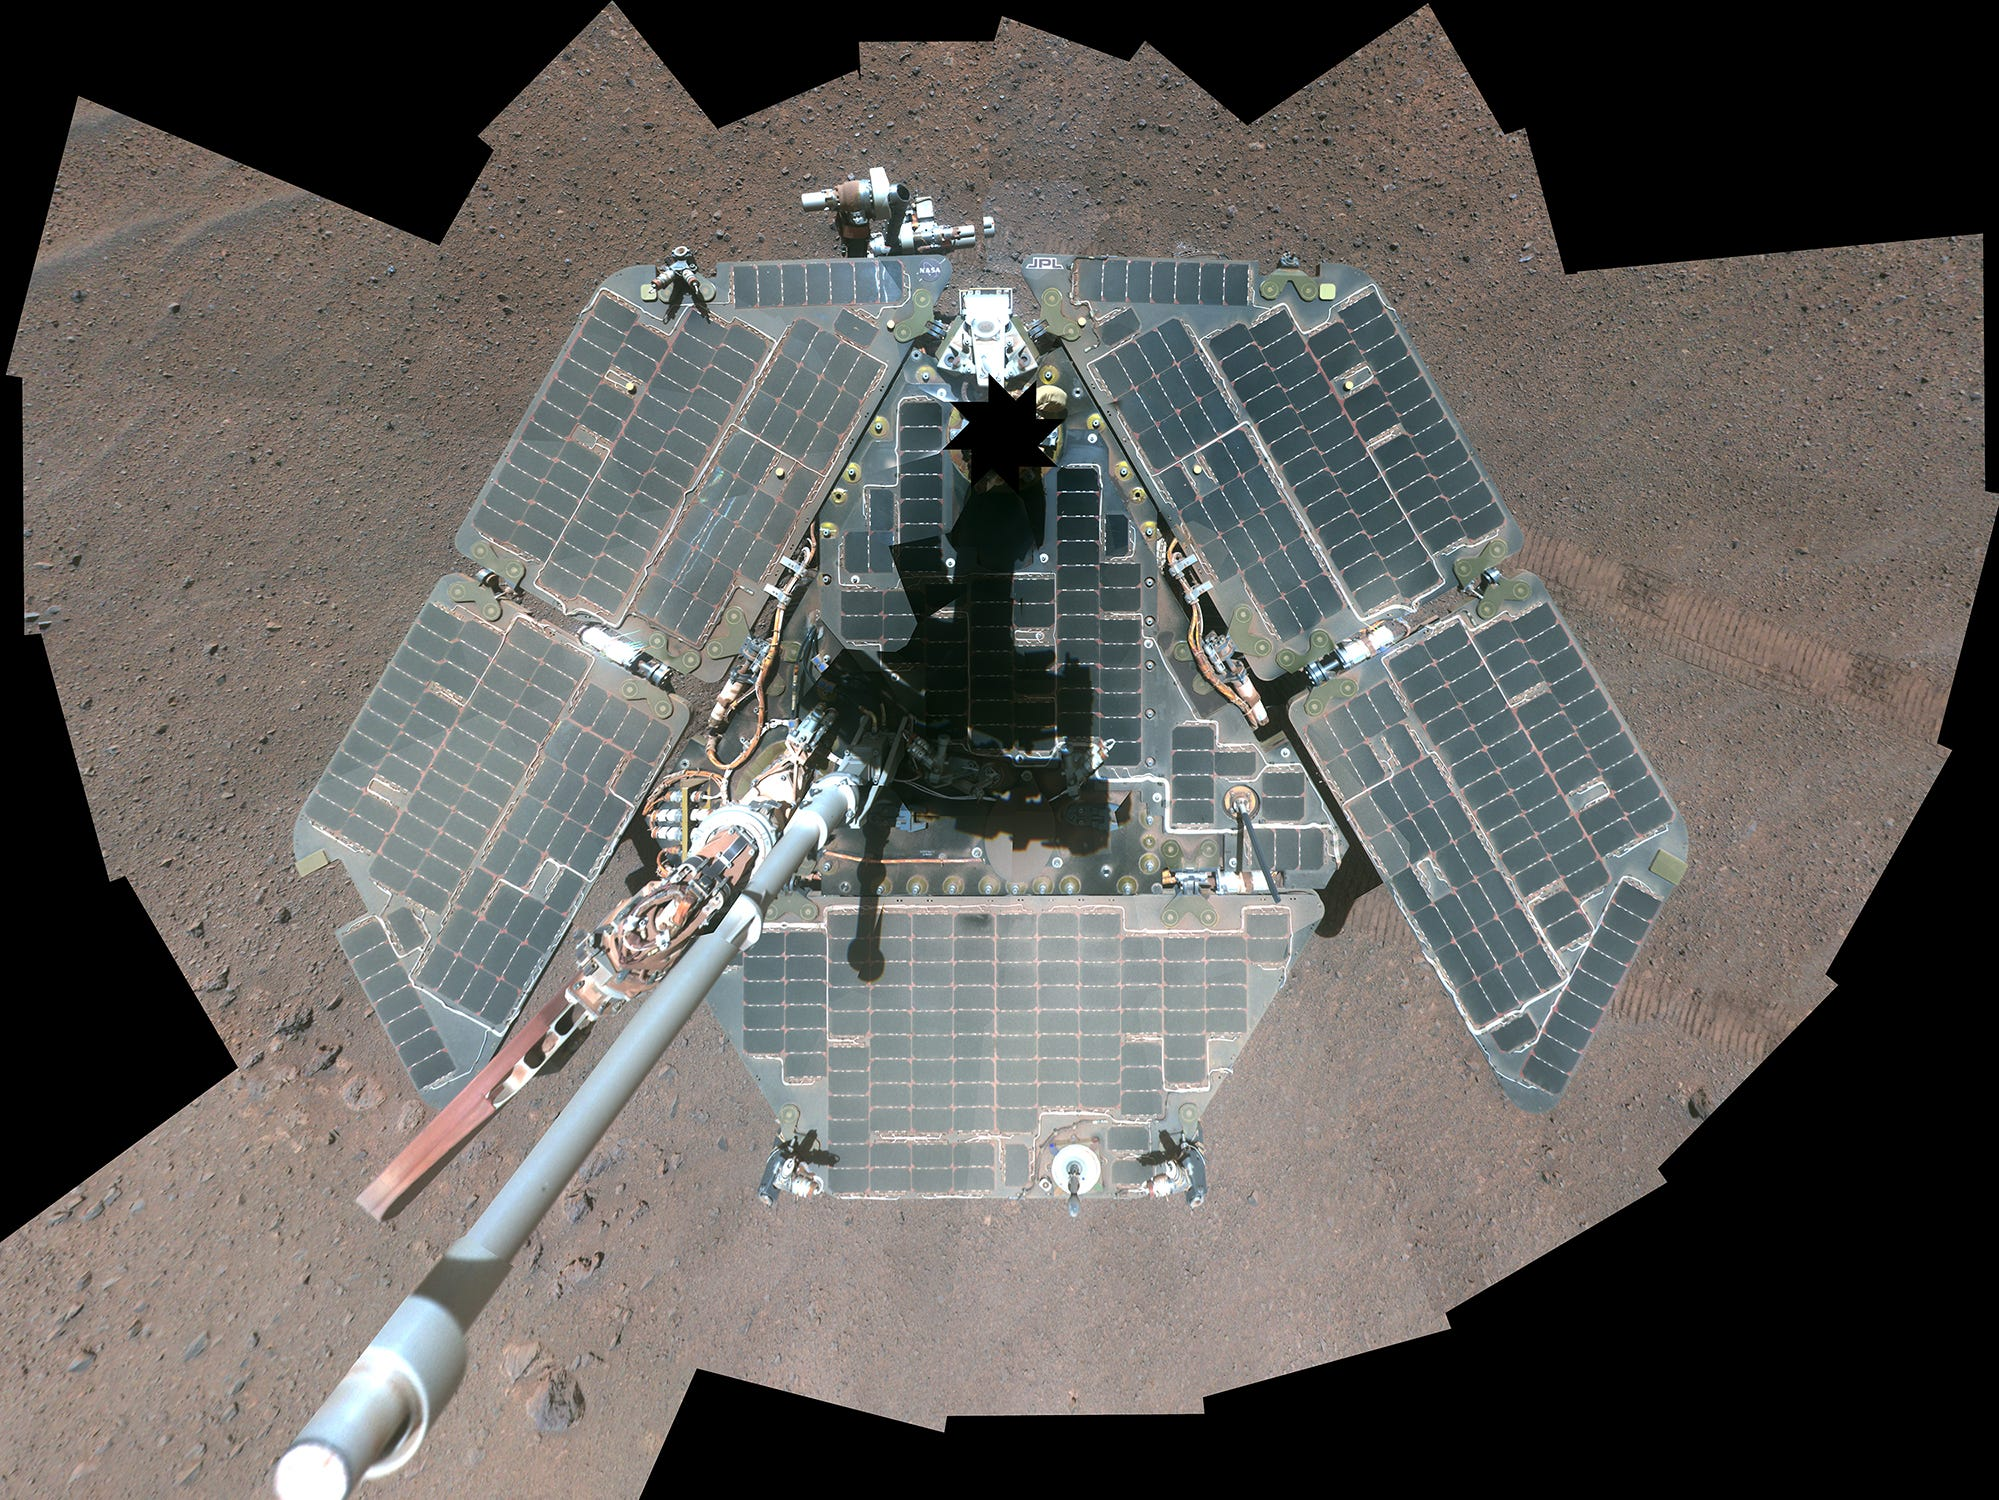 Opportunity took a self portrait on April 17, 2014. The image shows that wind had cleaned much of the dust off the rover's solar panels.